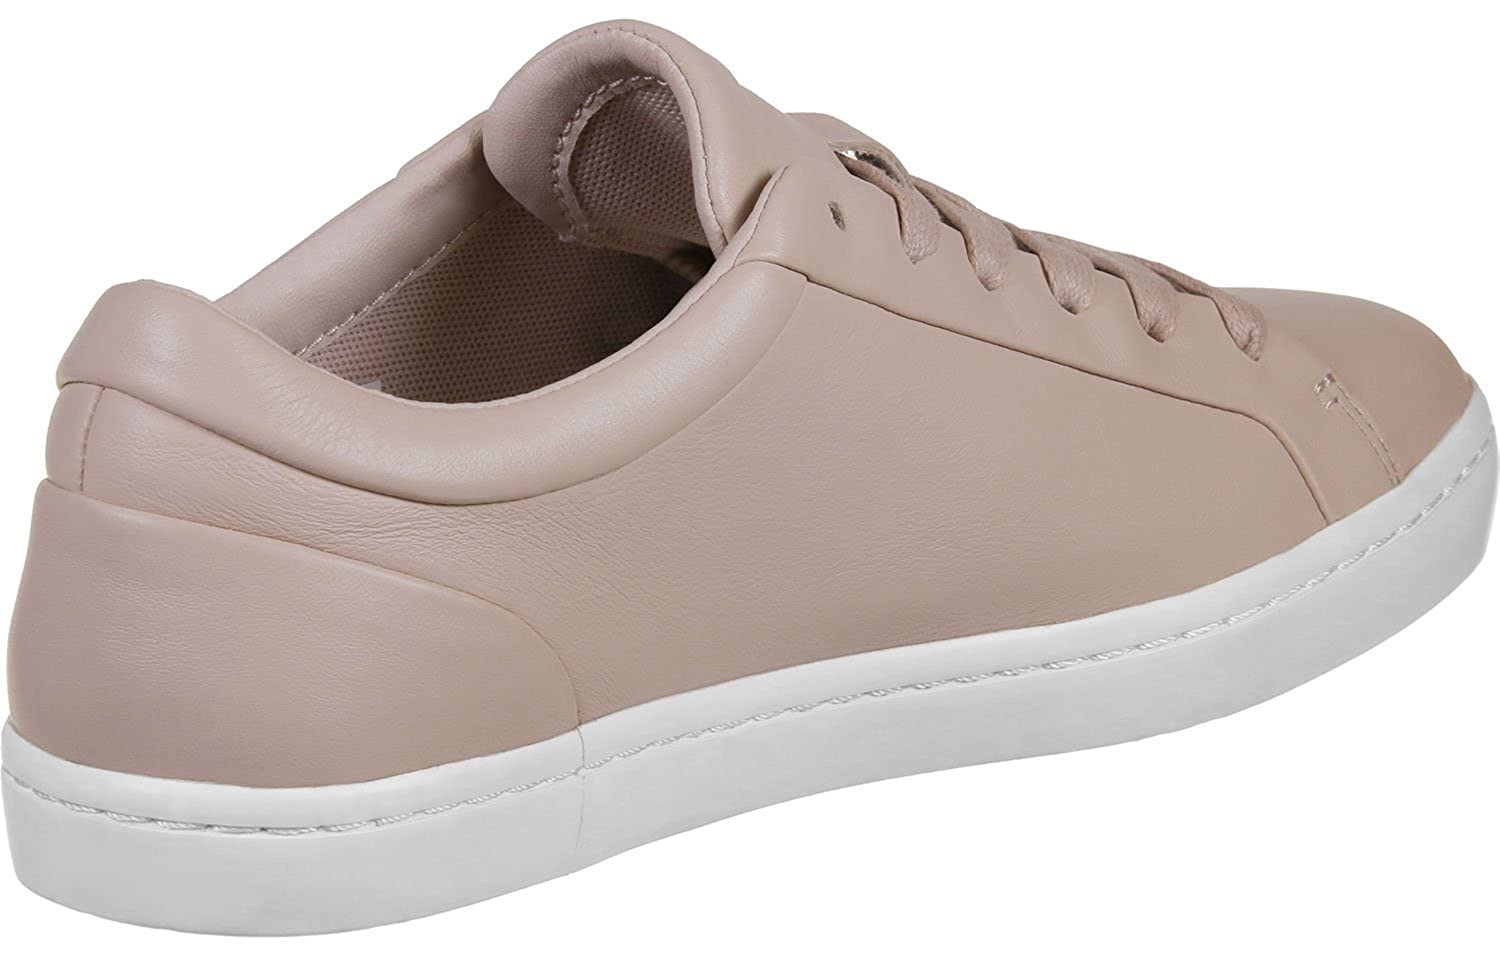 f92c1a266b218 Lacoste Straight Set Trainers Nude